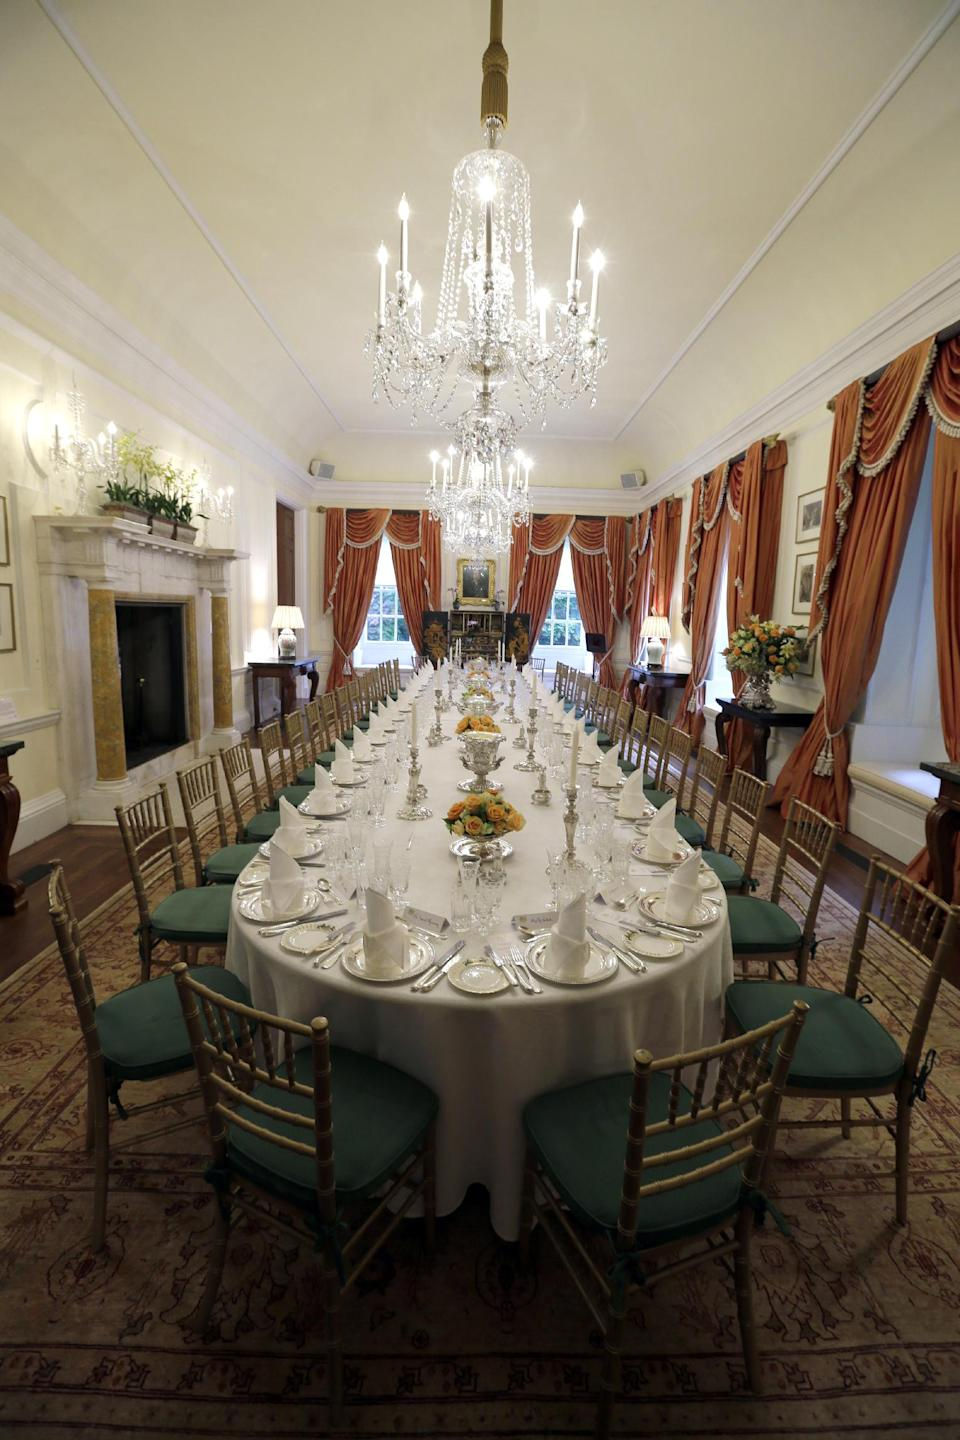 The place settings are set for dinner for 37 people for England's Prince Harry, at the British Ambassador's residence, Thursday, May 9, 2013 in Washington. (AP Photo/Alex Brandon, Pool)